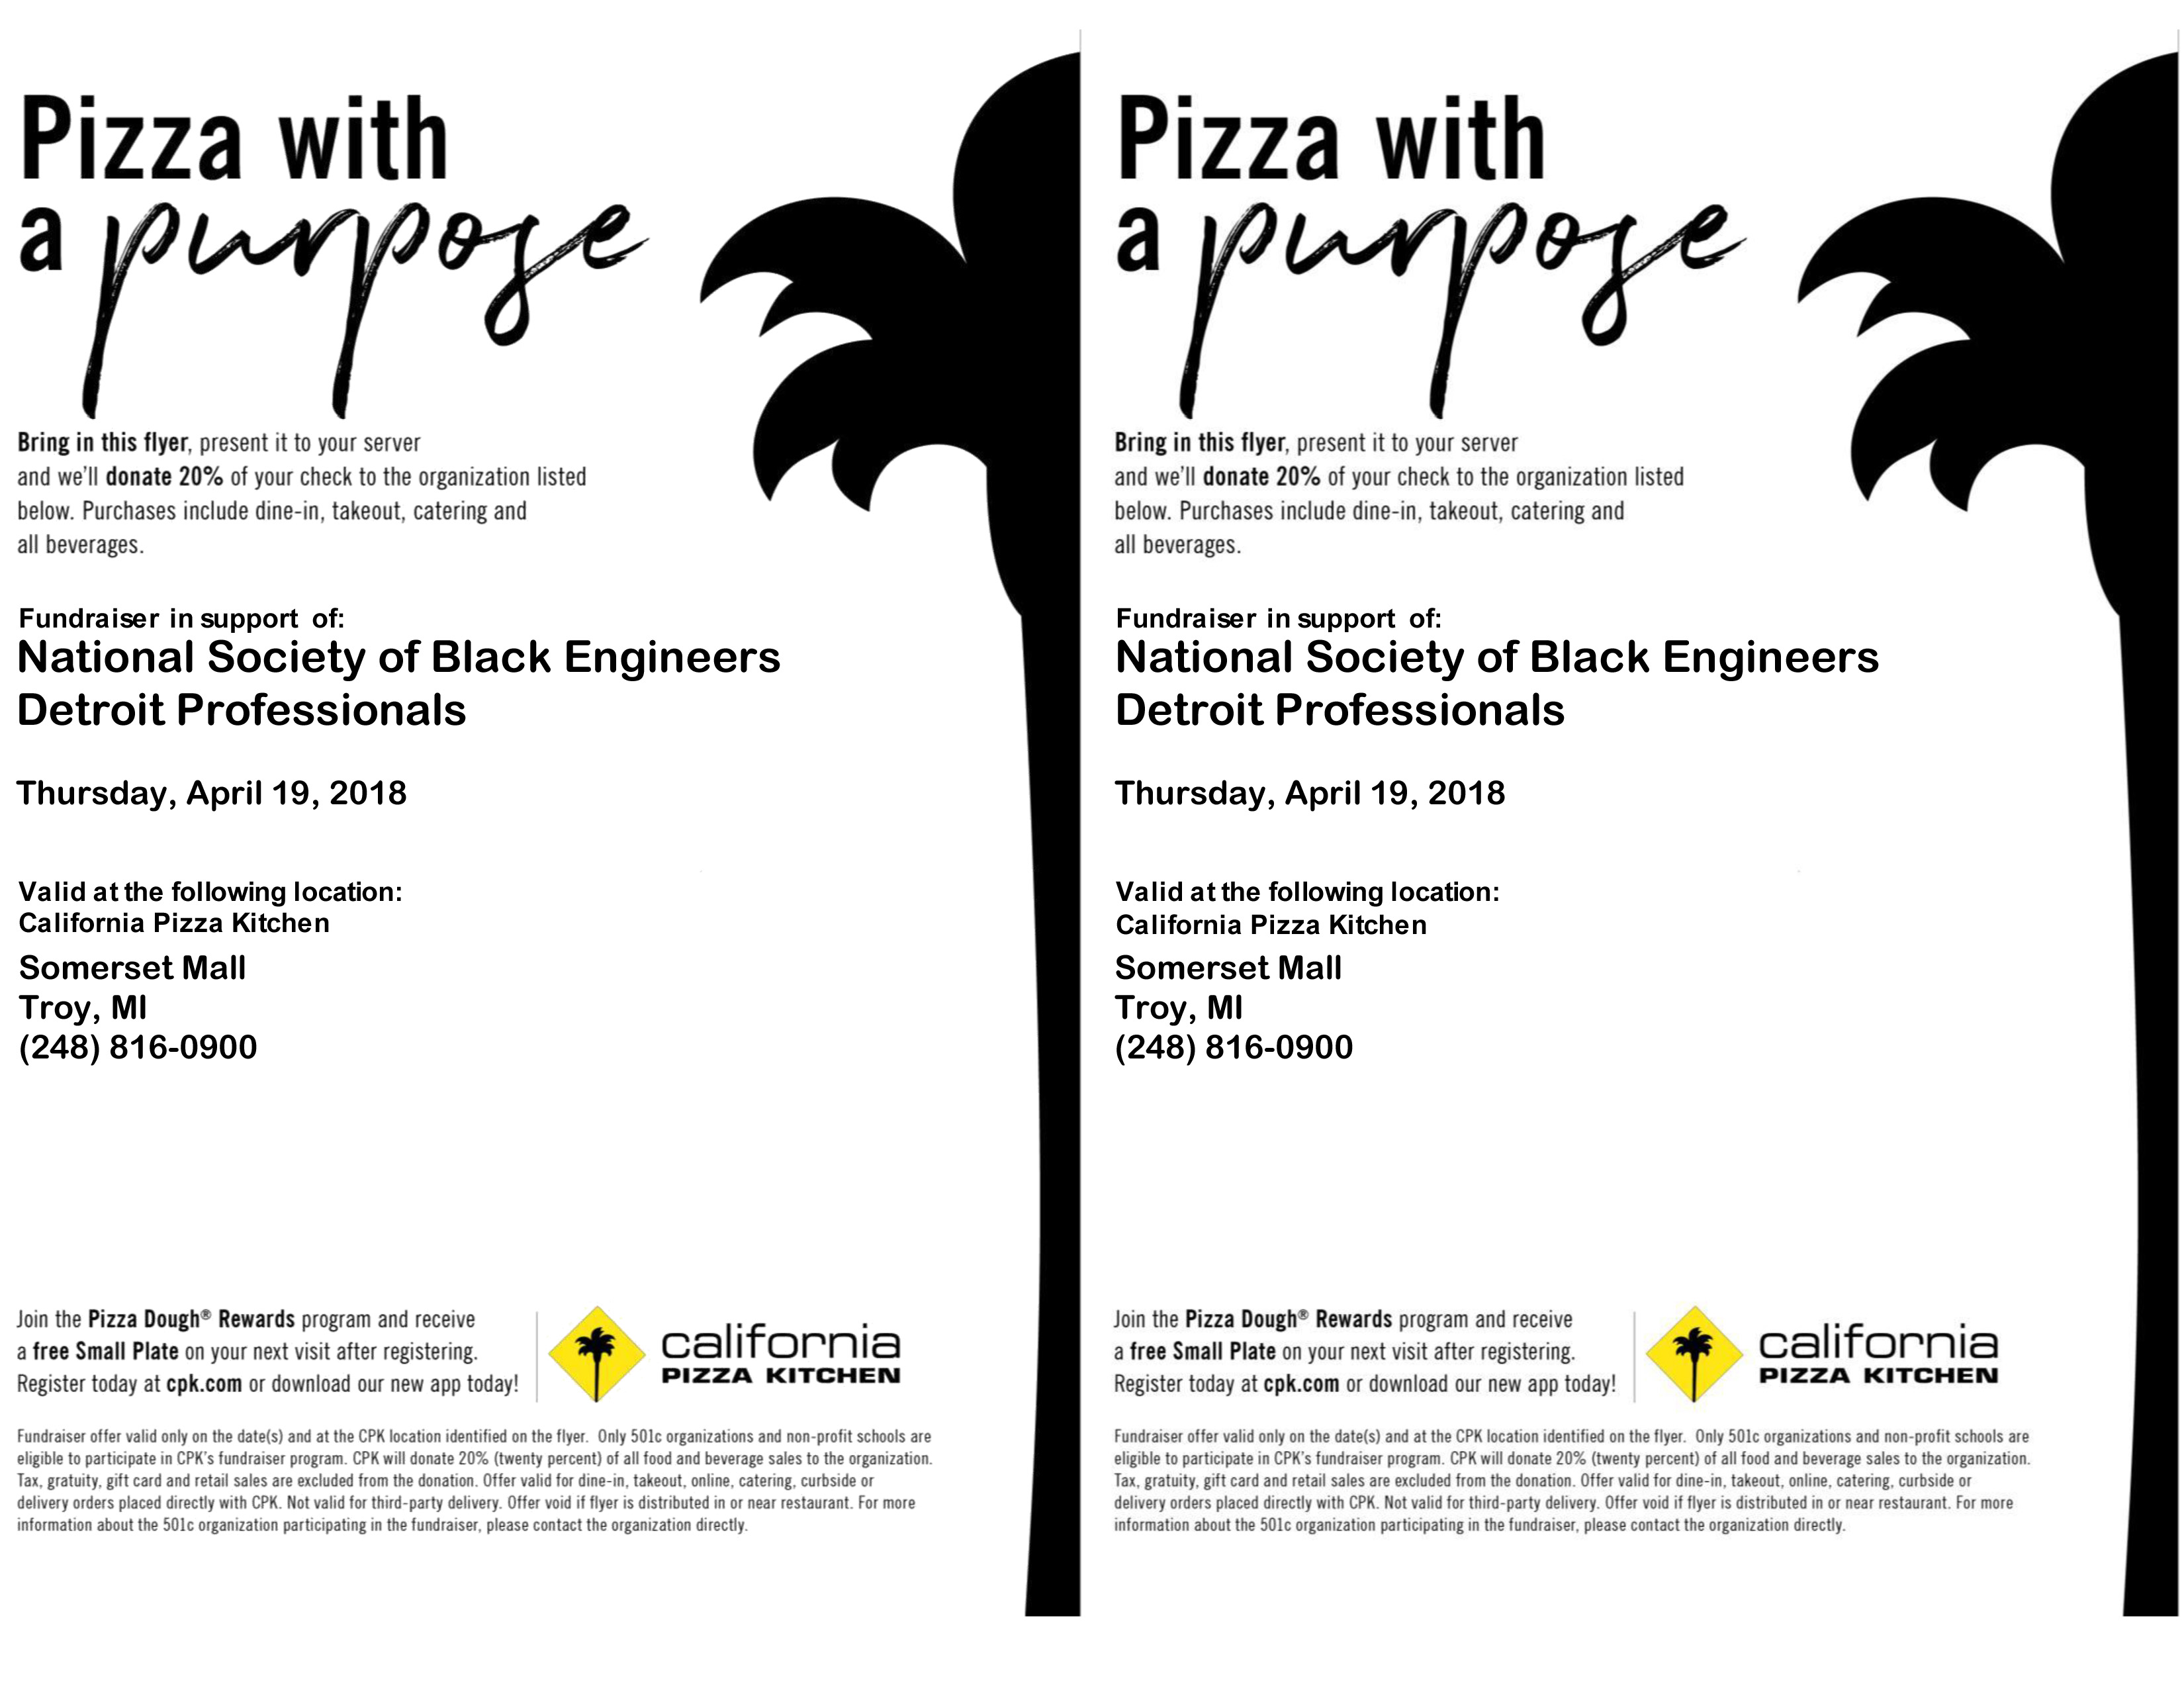 CPK_Fundraising_Packet_National Society of Black Engineers-4 copy